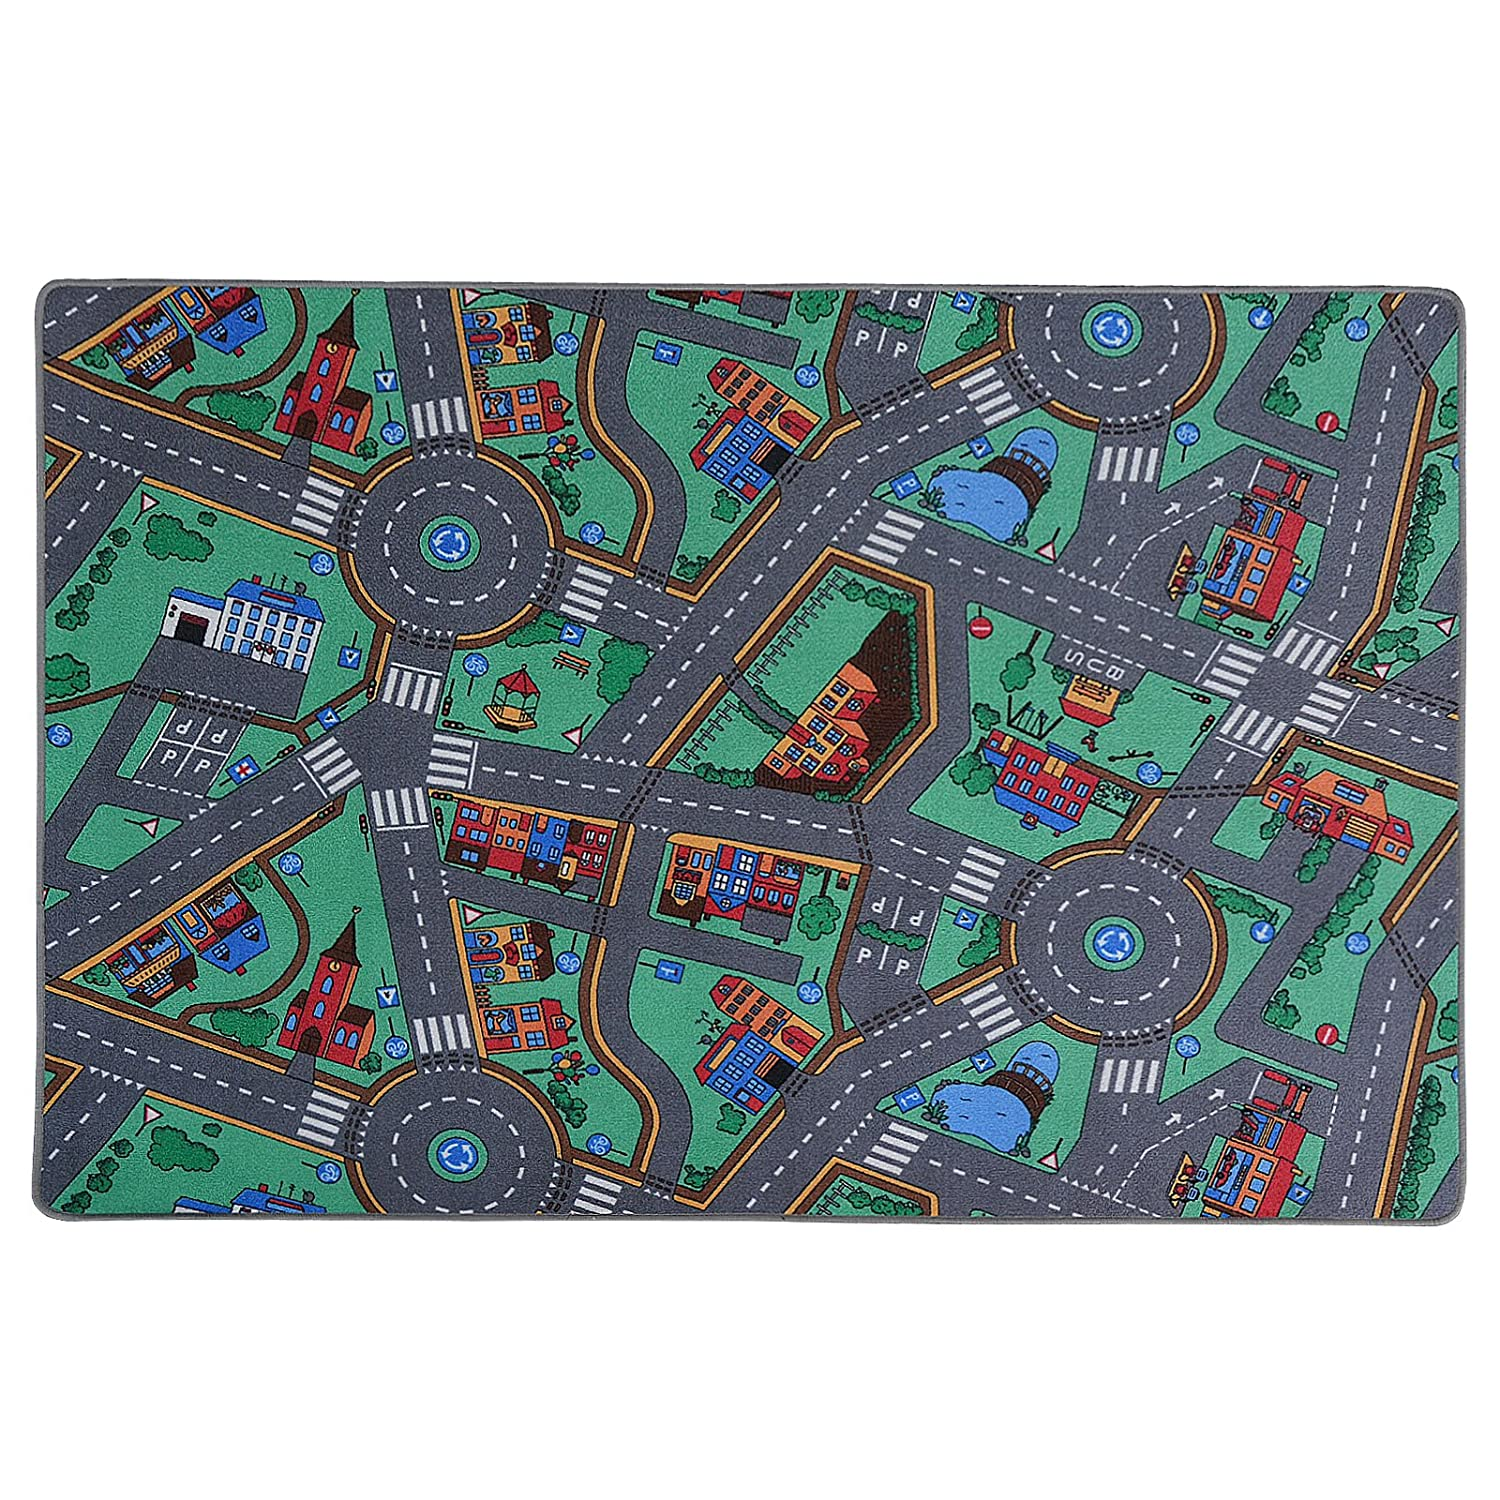 Children's Play Mat - My Town - 100x165cm - 4 sizes available Floori Carpets